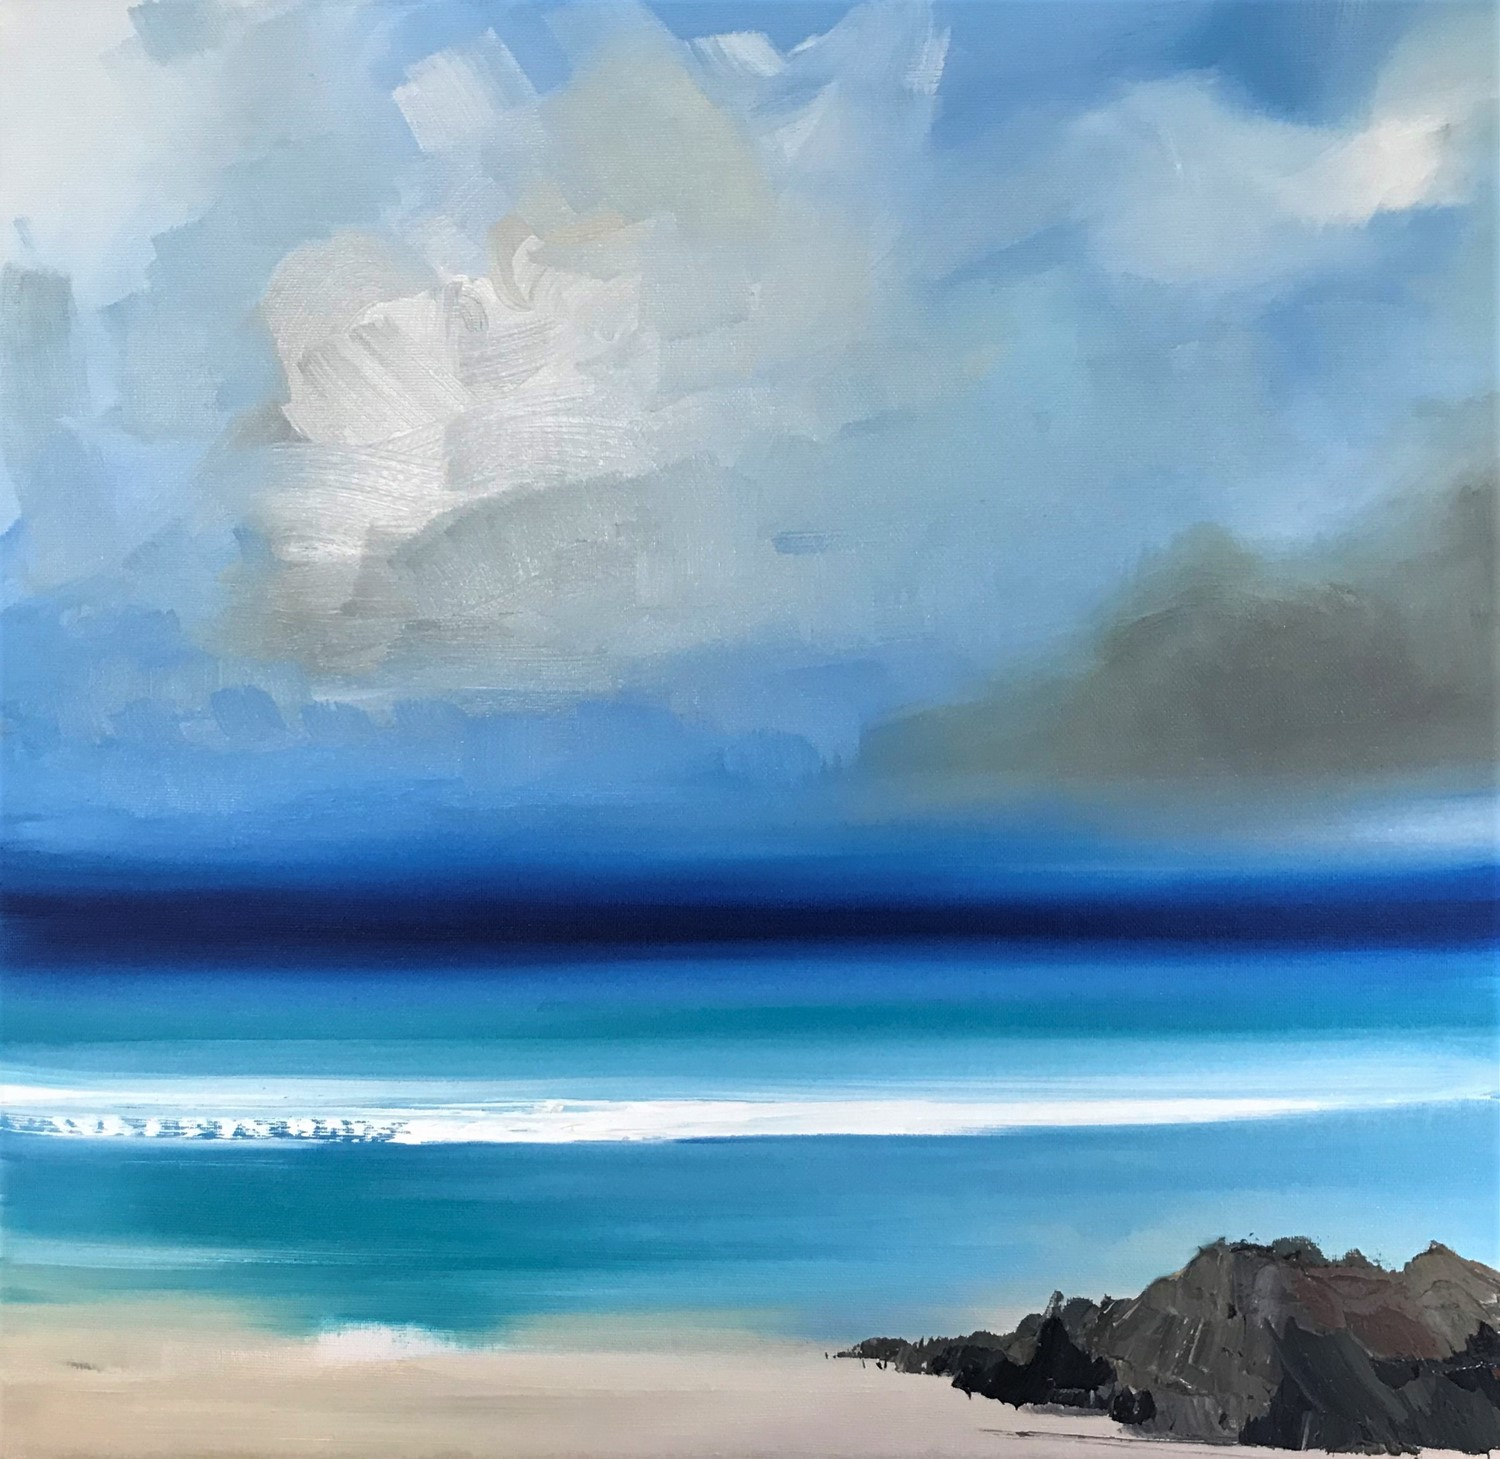 'Tropical Scotland' by artist Rosanne Barr